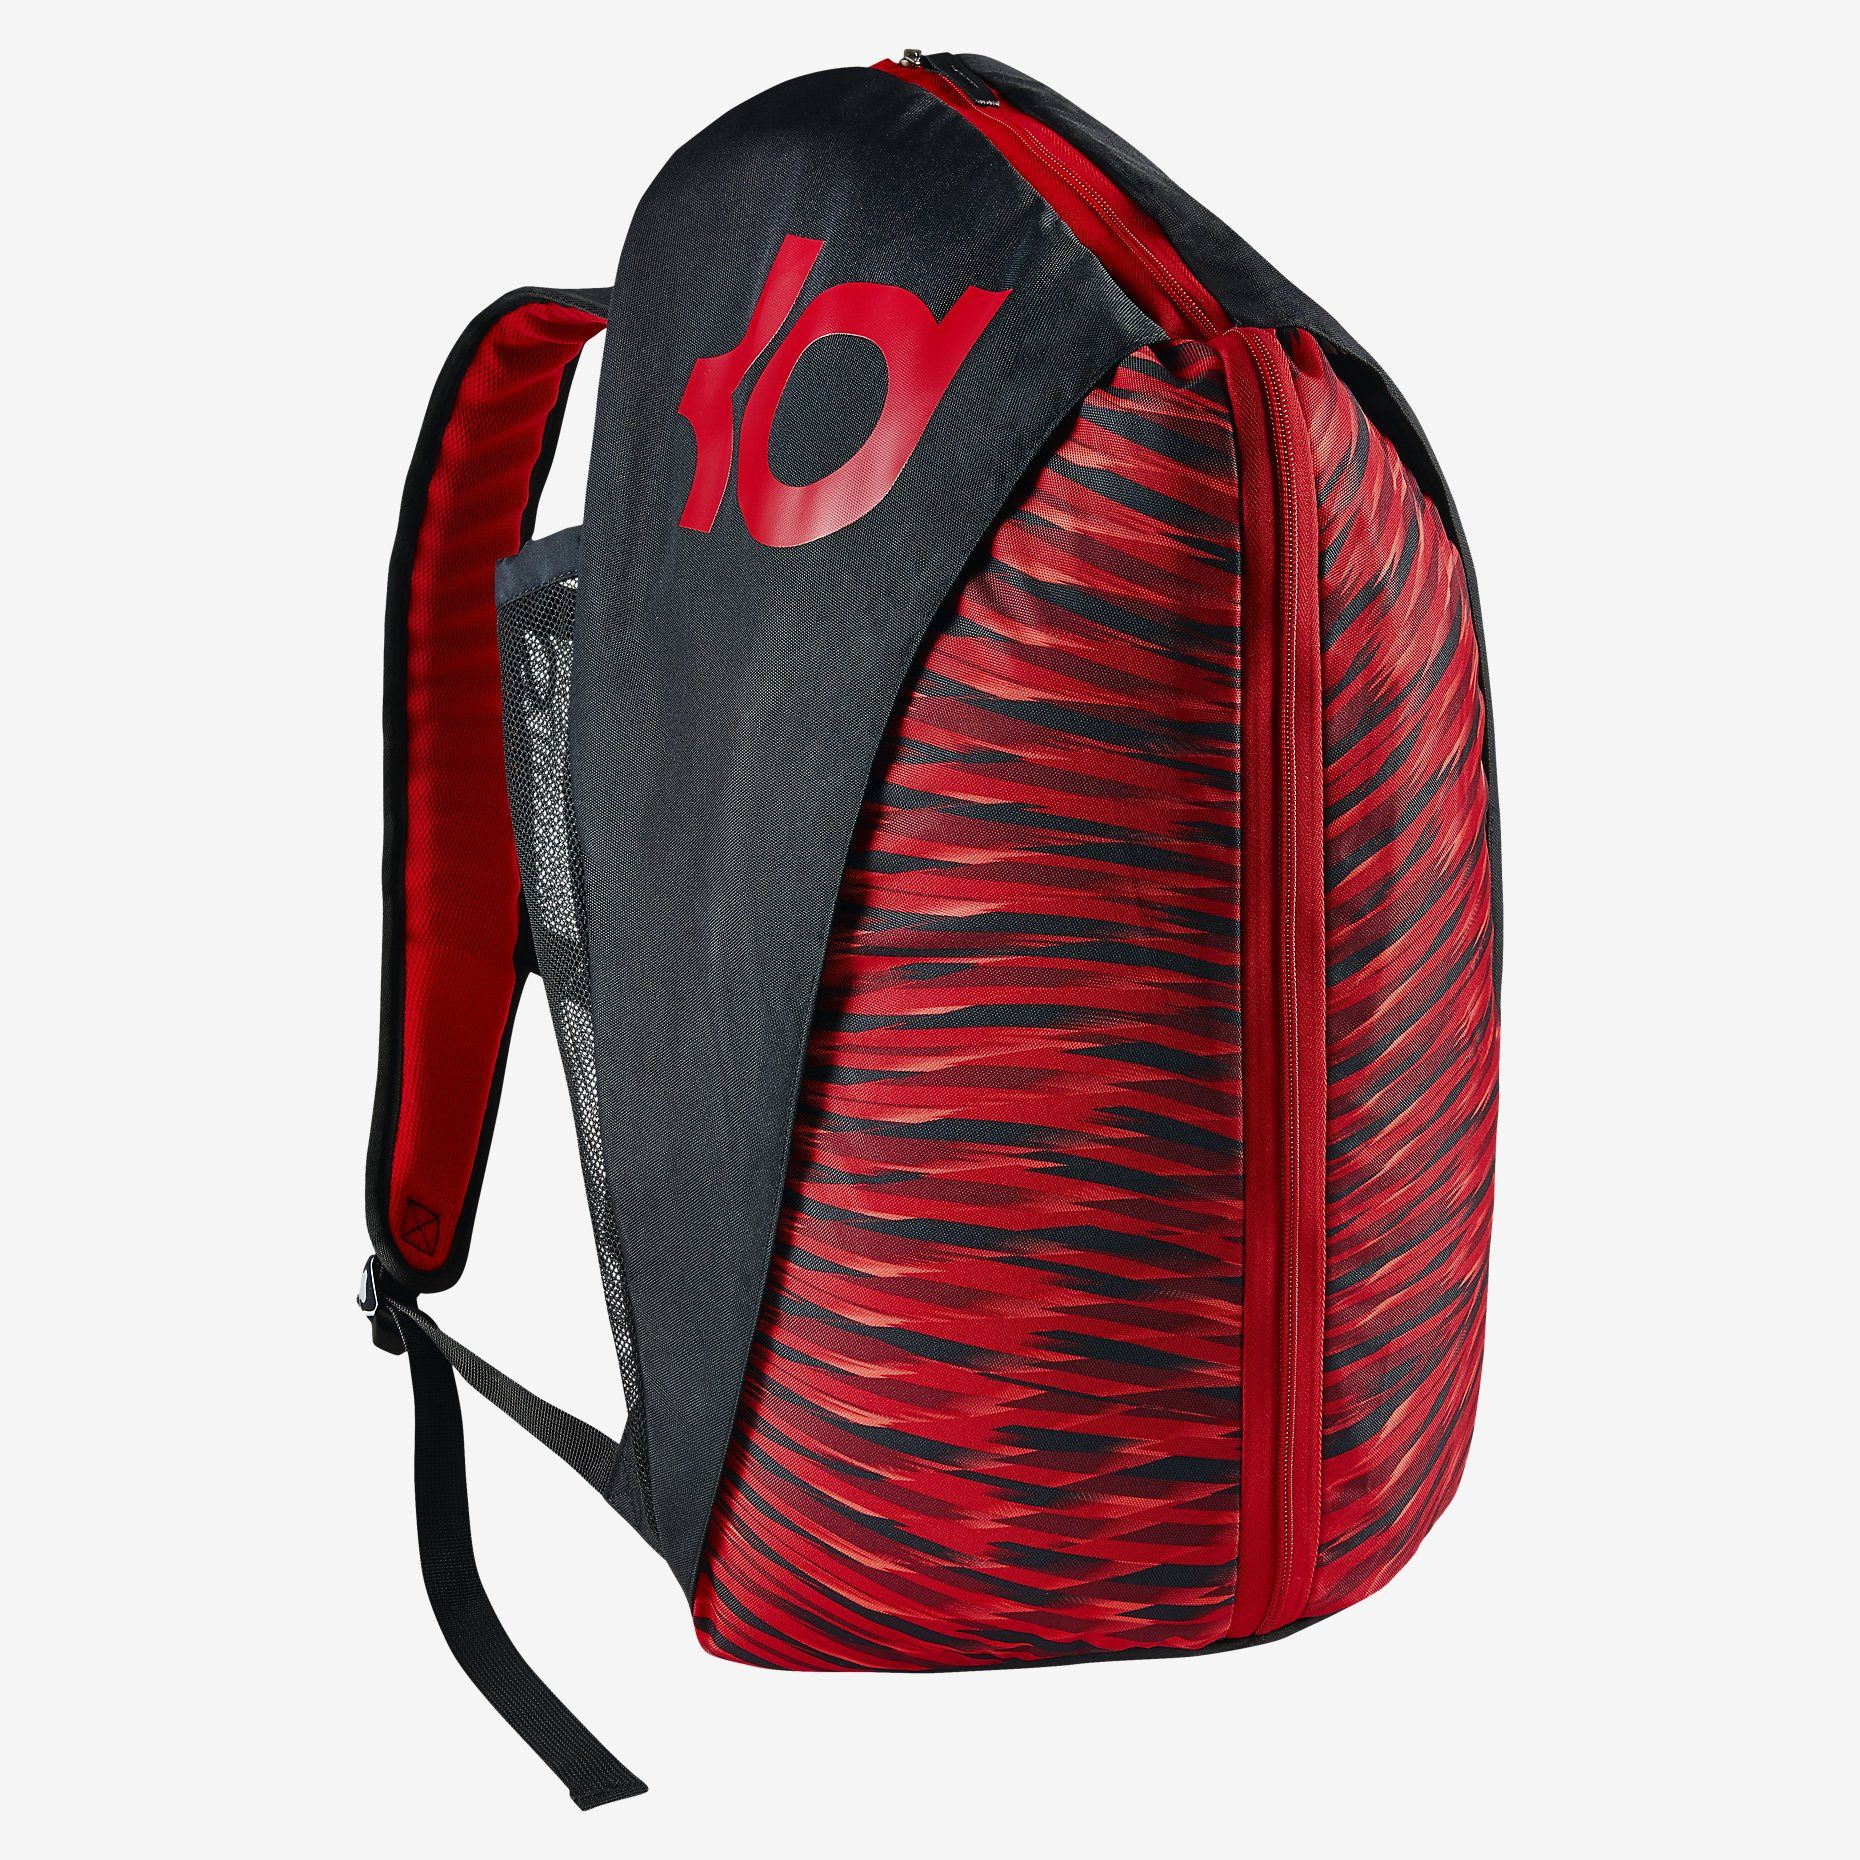 The Kd Max Air Viii Basketball Backpack Backpacks Basketball Backpack Nike Backpack